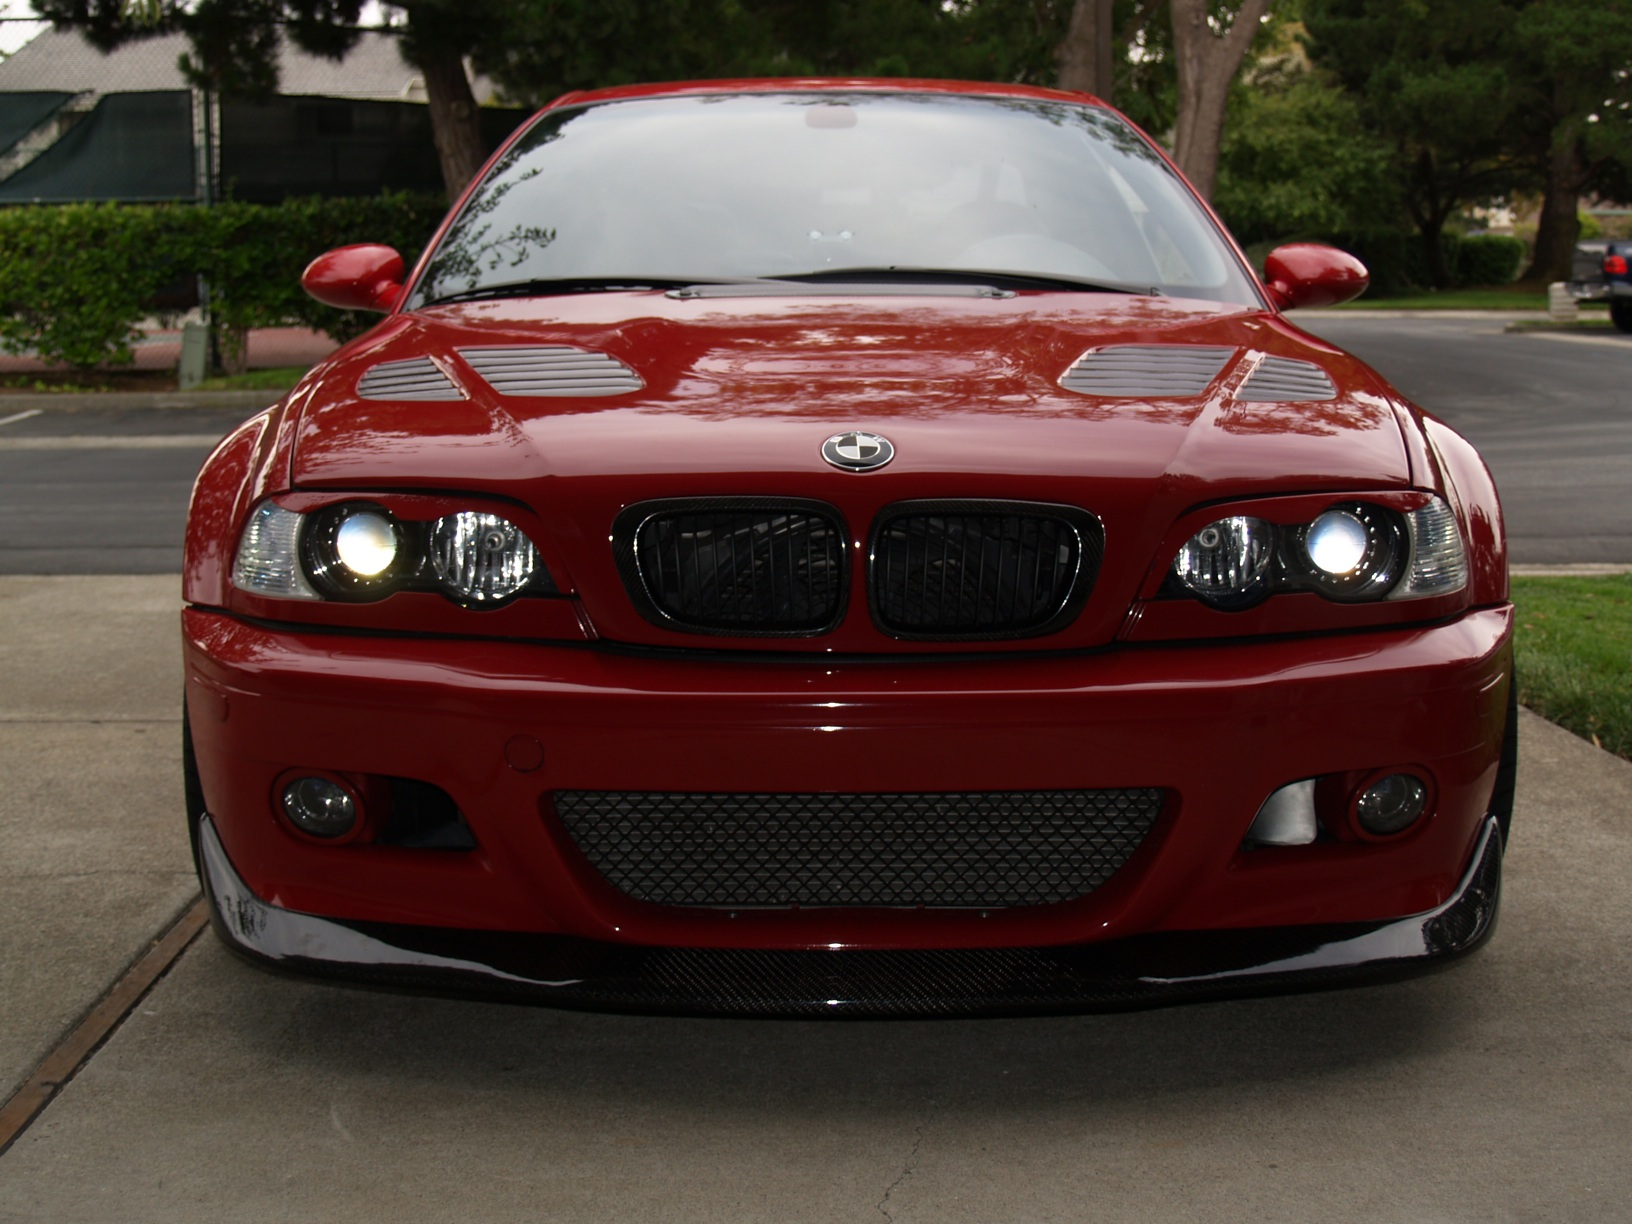 2002 620hp 3 4l Supercharged E46 M3 Imola Red Black